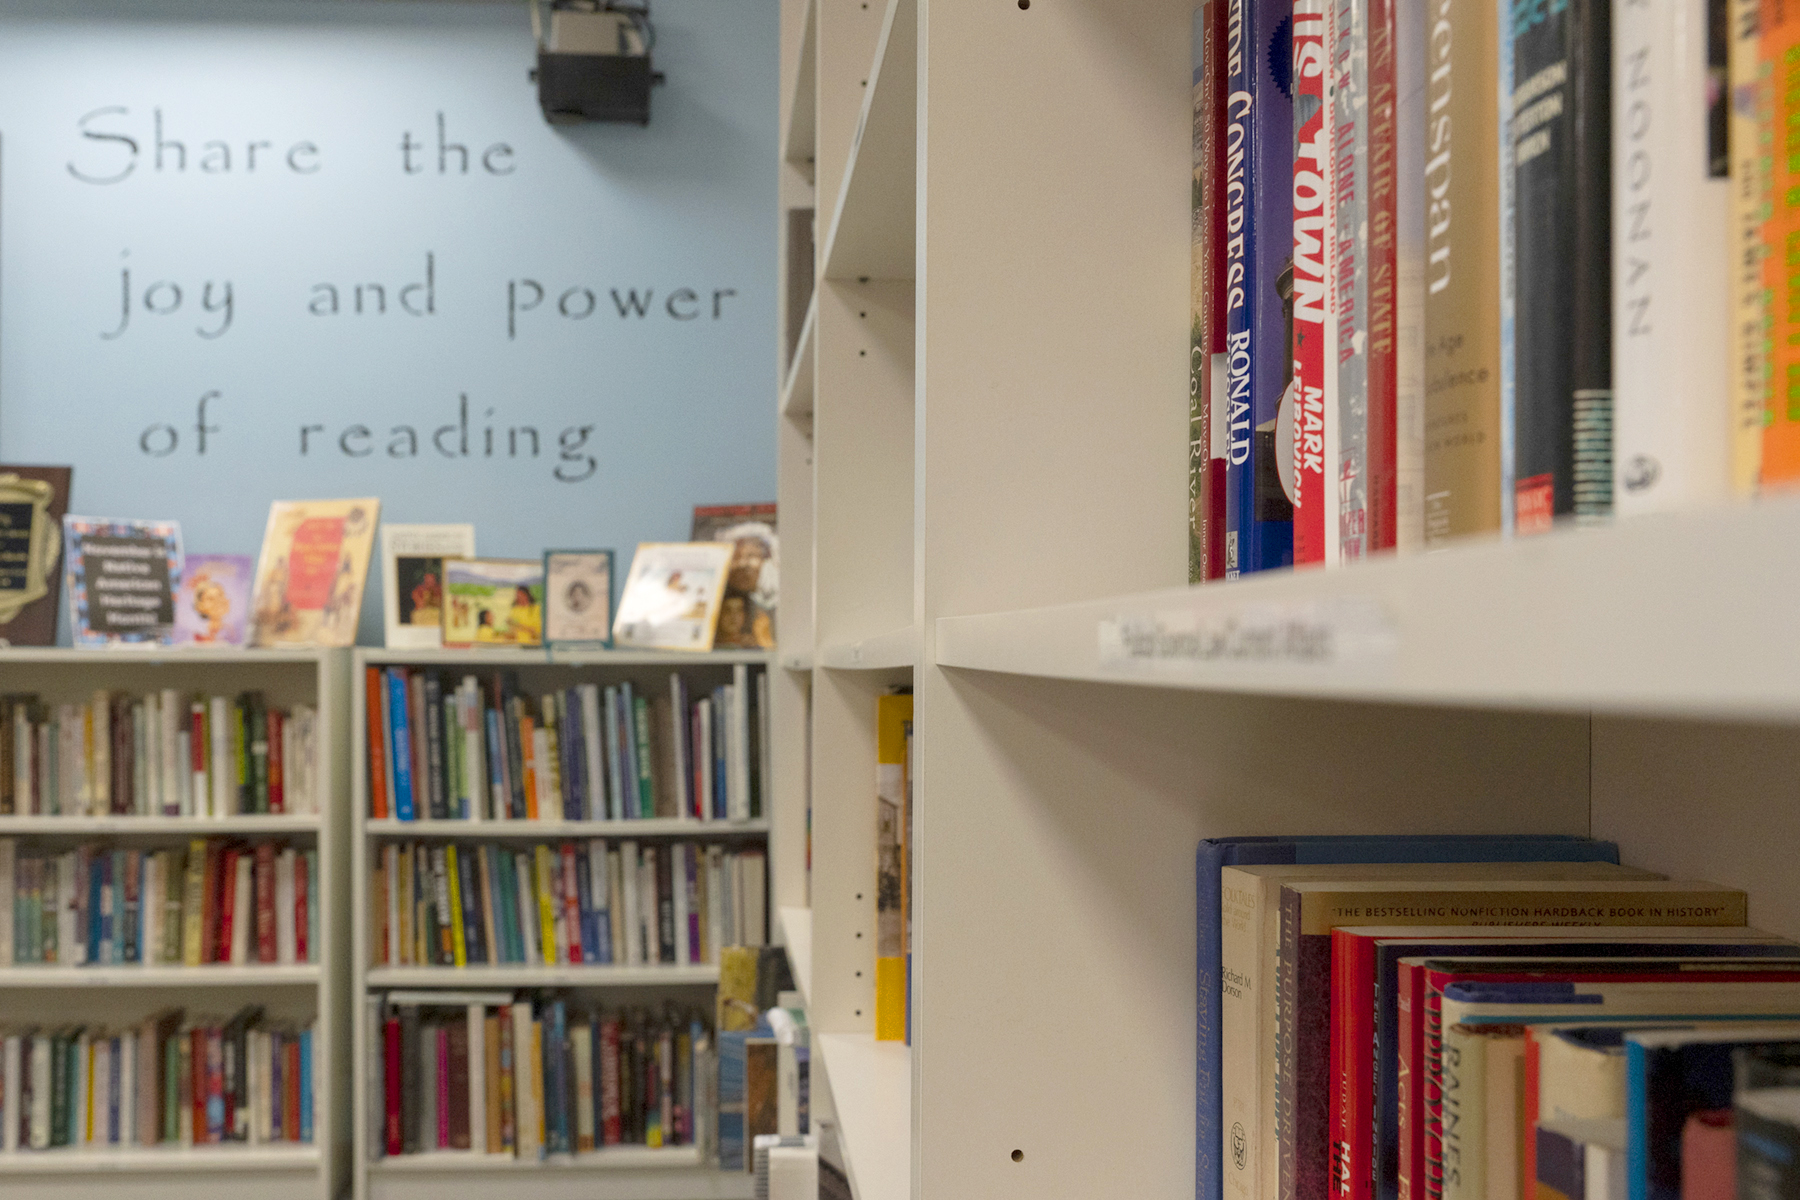 Shelves full of books line the front room of the NHR Book Bank.